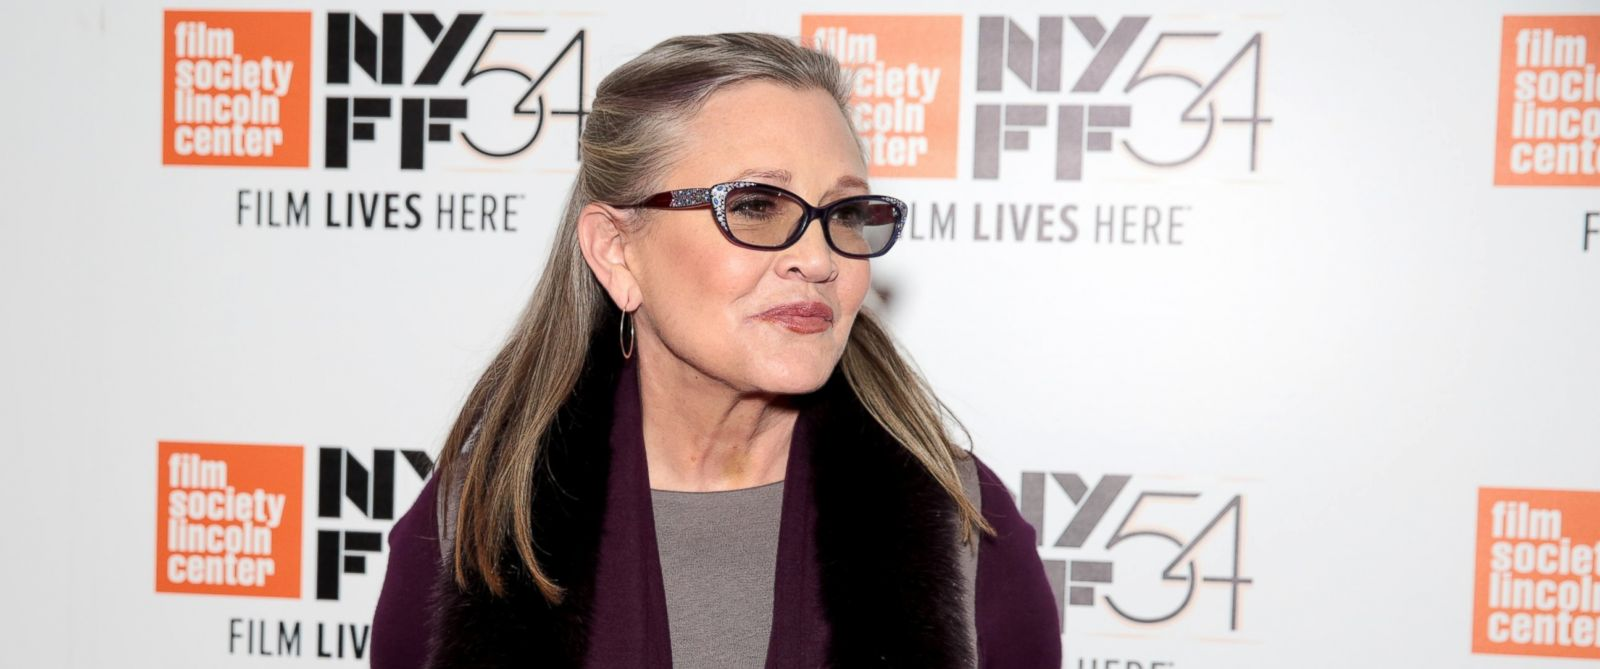 PHOTO: Carrie Fisher attends the 54th New York Film Festival Bright Lights screening at Alice Tully Hall, Oct. 10, 2016, in New York City.